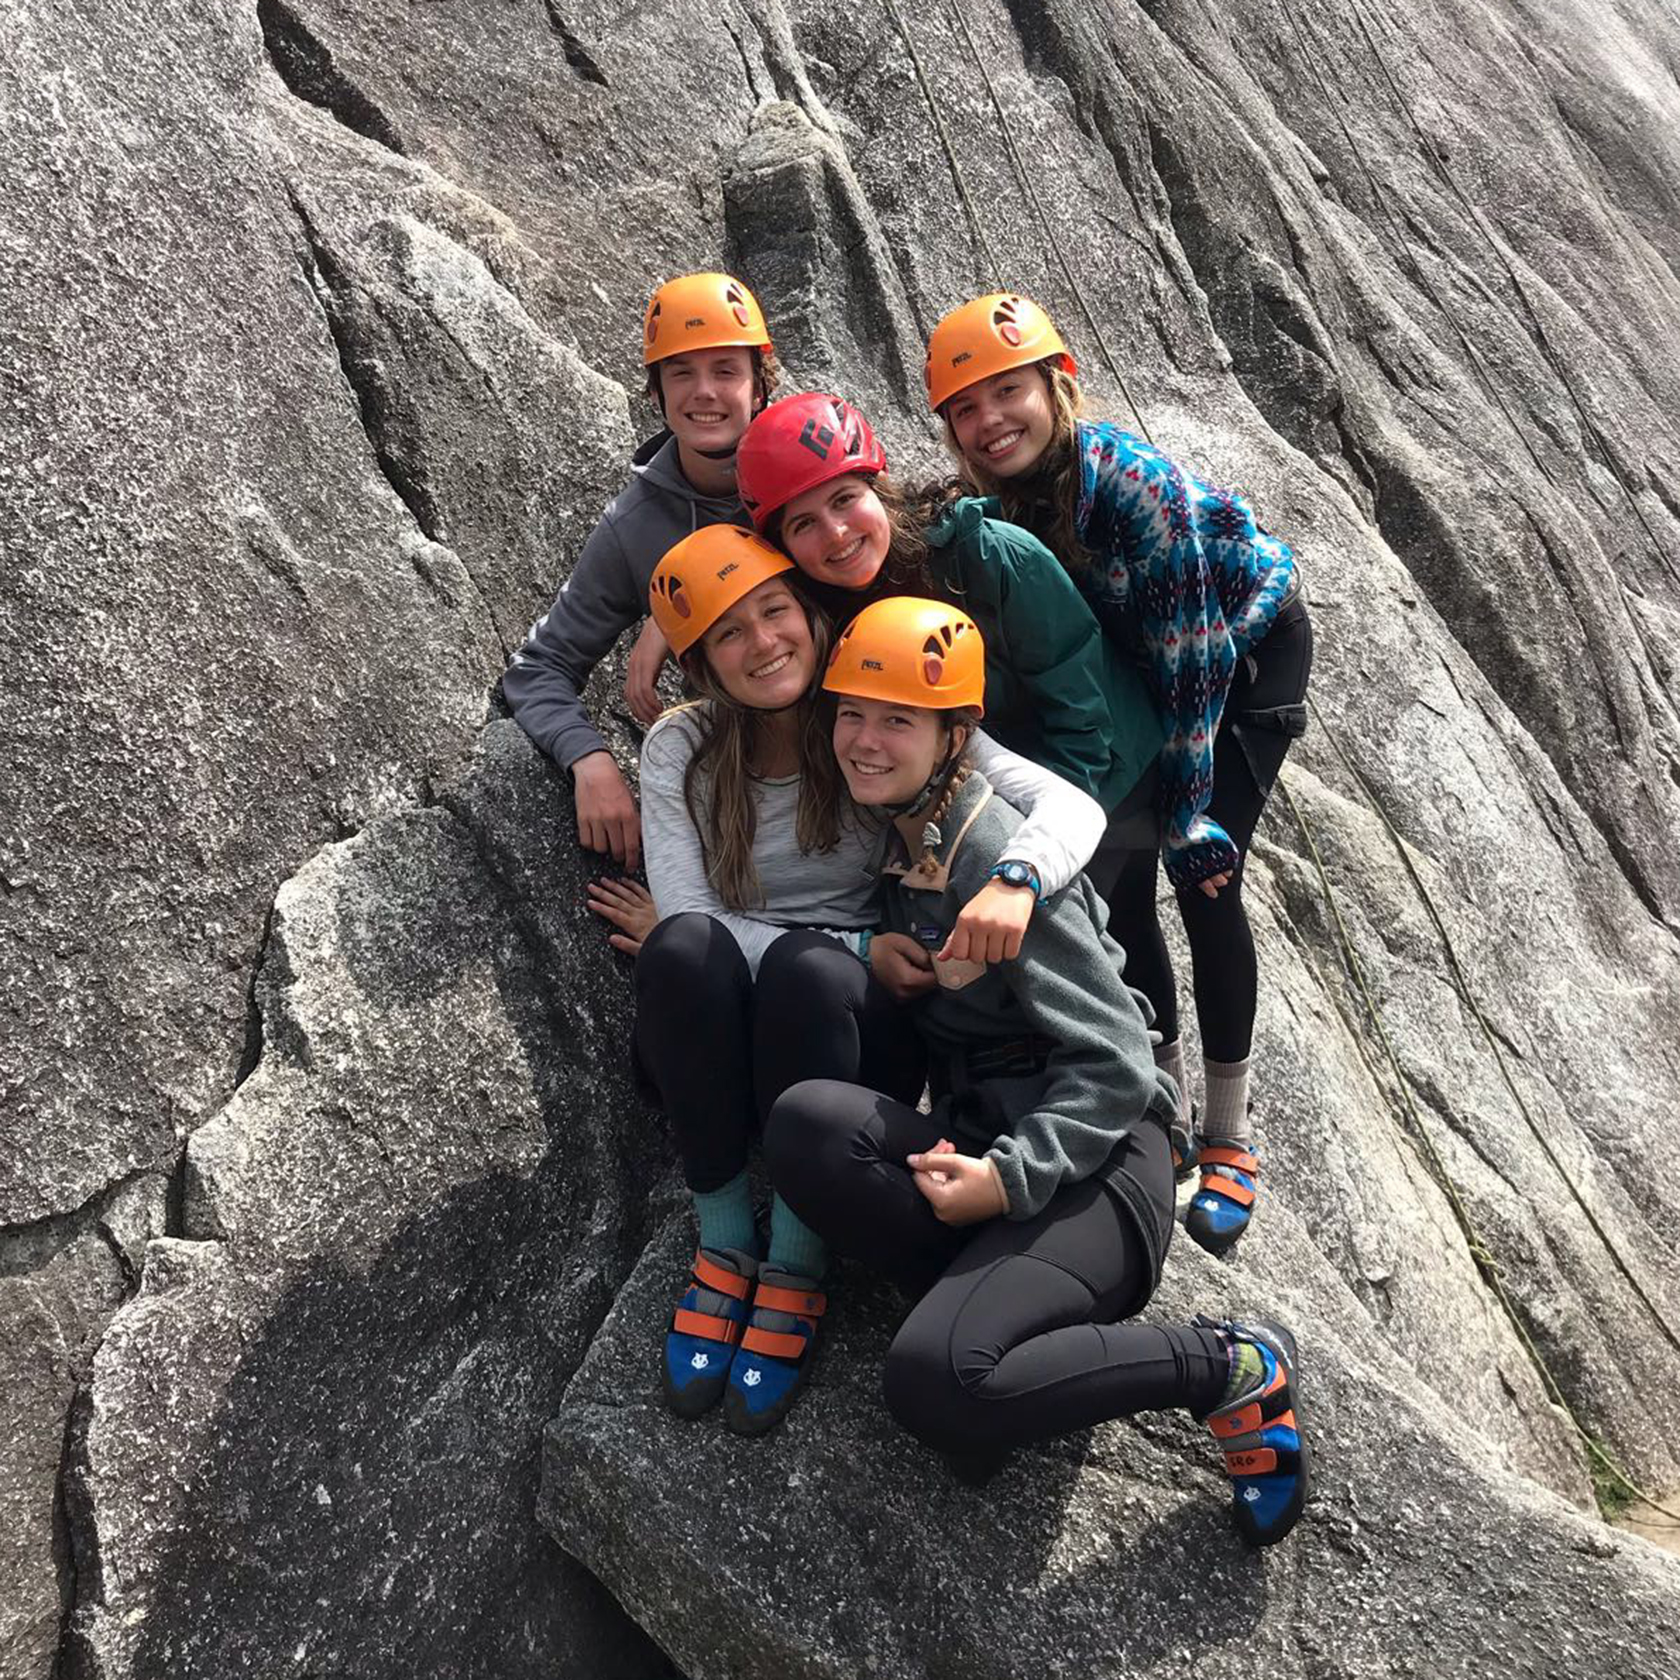 Group of girls wearing helmets to rock climb